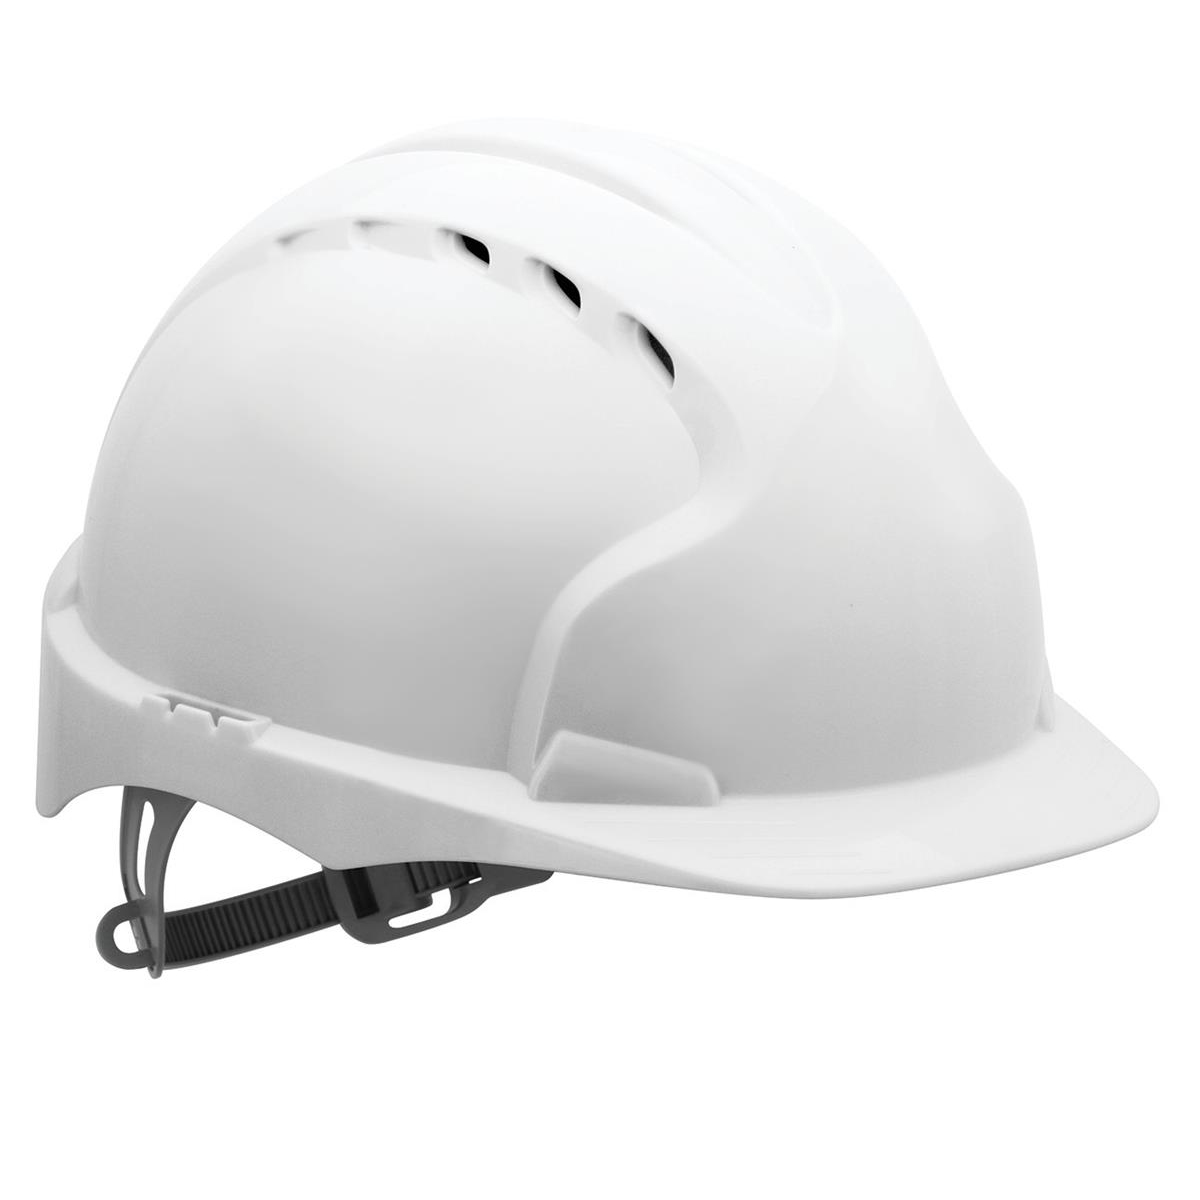 JSP EVO2 Safety Helmet HDPE 6-point Polyethylene Harness EN397 Standard White Ref AJF030-000-100